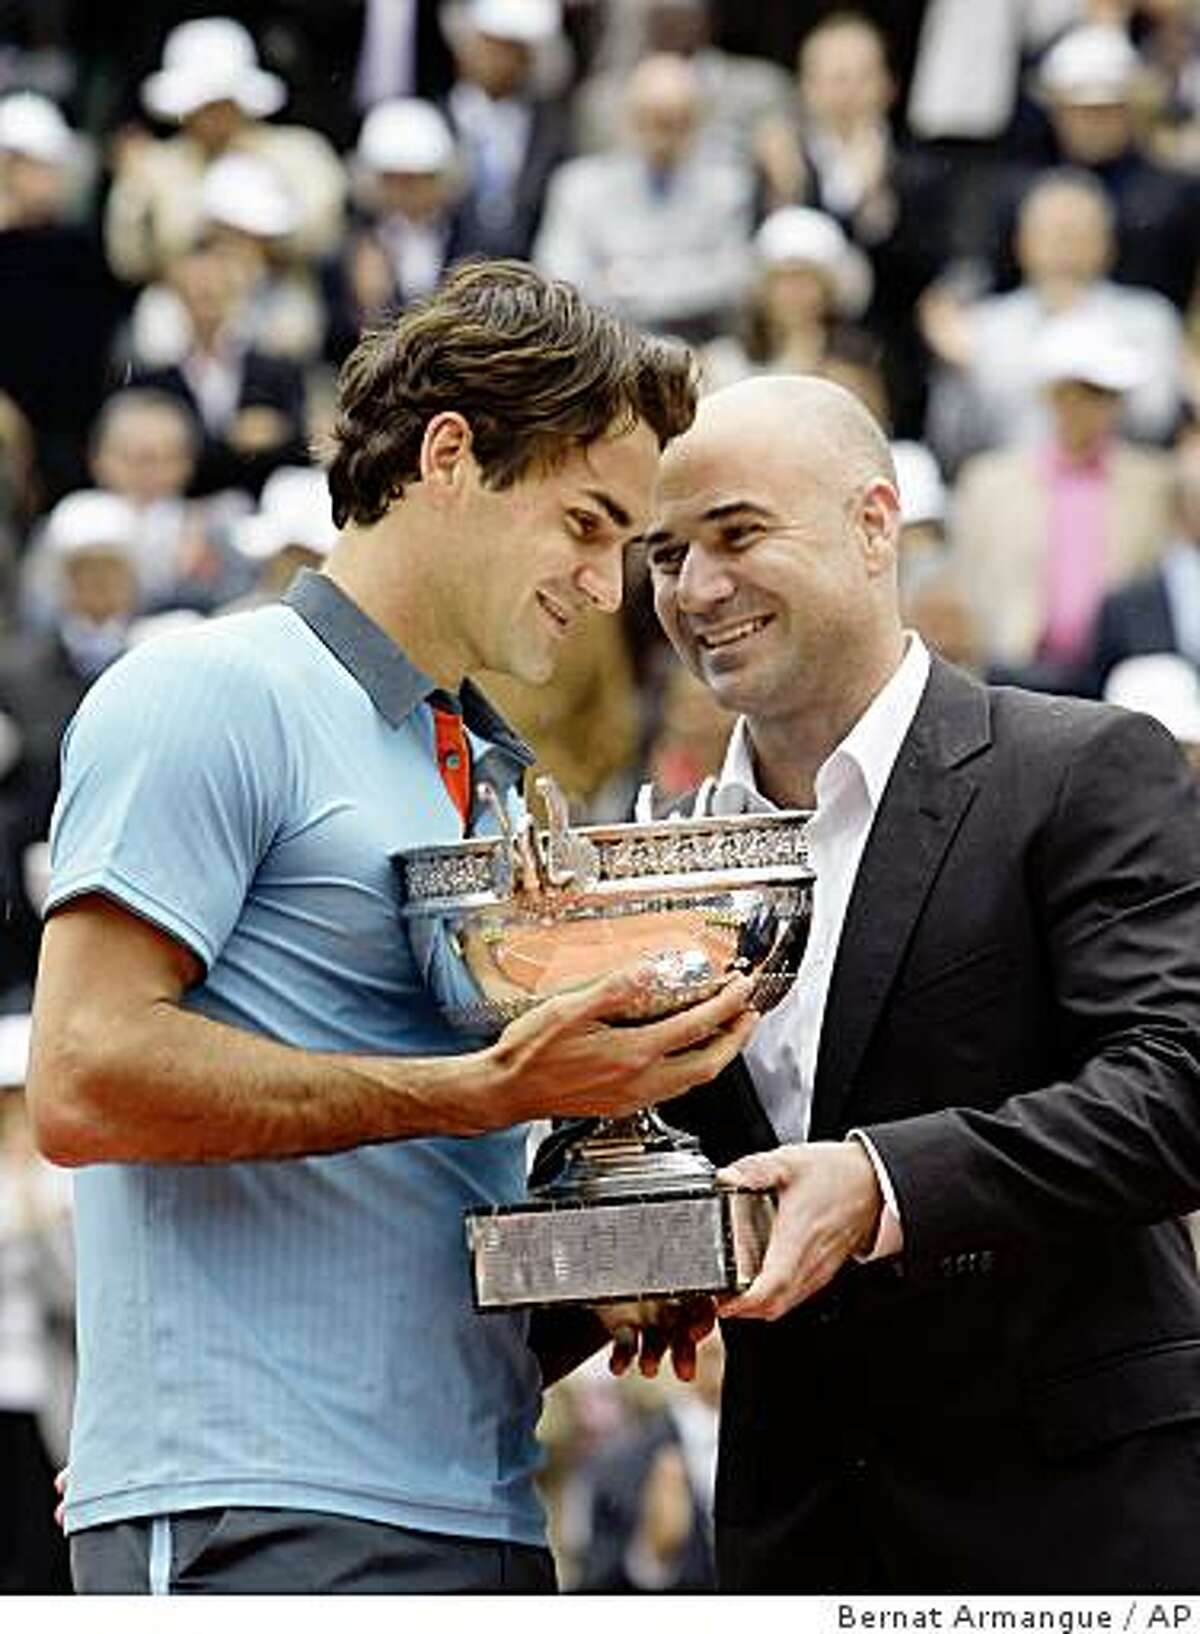 Switzerland's Roger Federer, left, receives the trophy from tennis legend Andre Agassi after defeating Sweden's Robin Soderling during their men's singles final match of the French Open tennis tournament at the Roland Garros stadium in Paris, Sunday June 7, 2009. The victory gives Federer 14 Grand Slams, tying his career wins to American Pete Sampras. (AP Photo/Bernat Armangue)